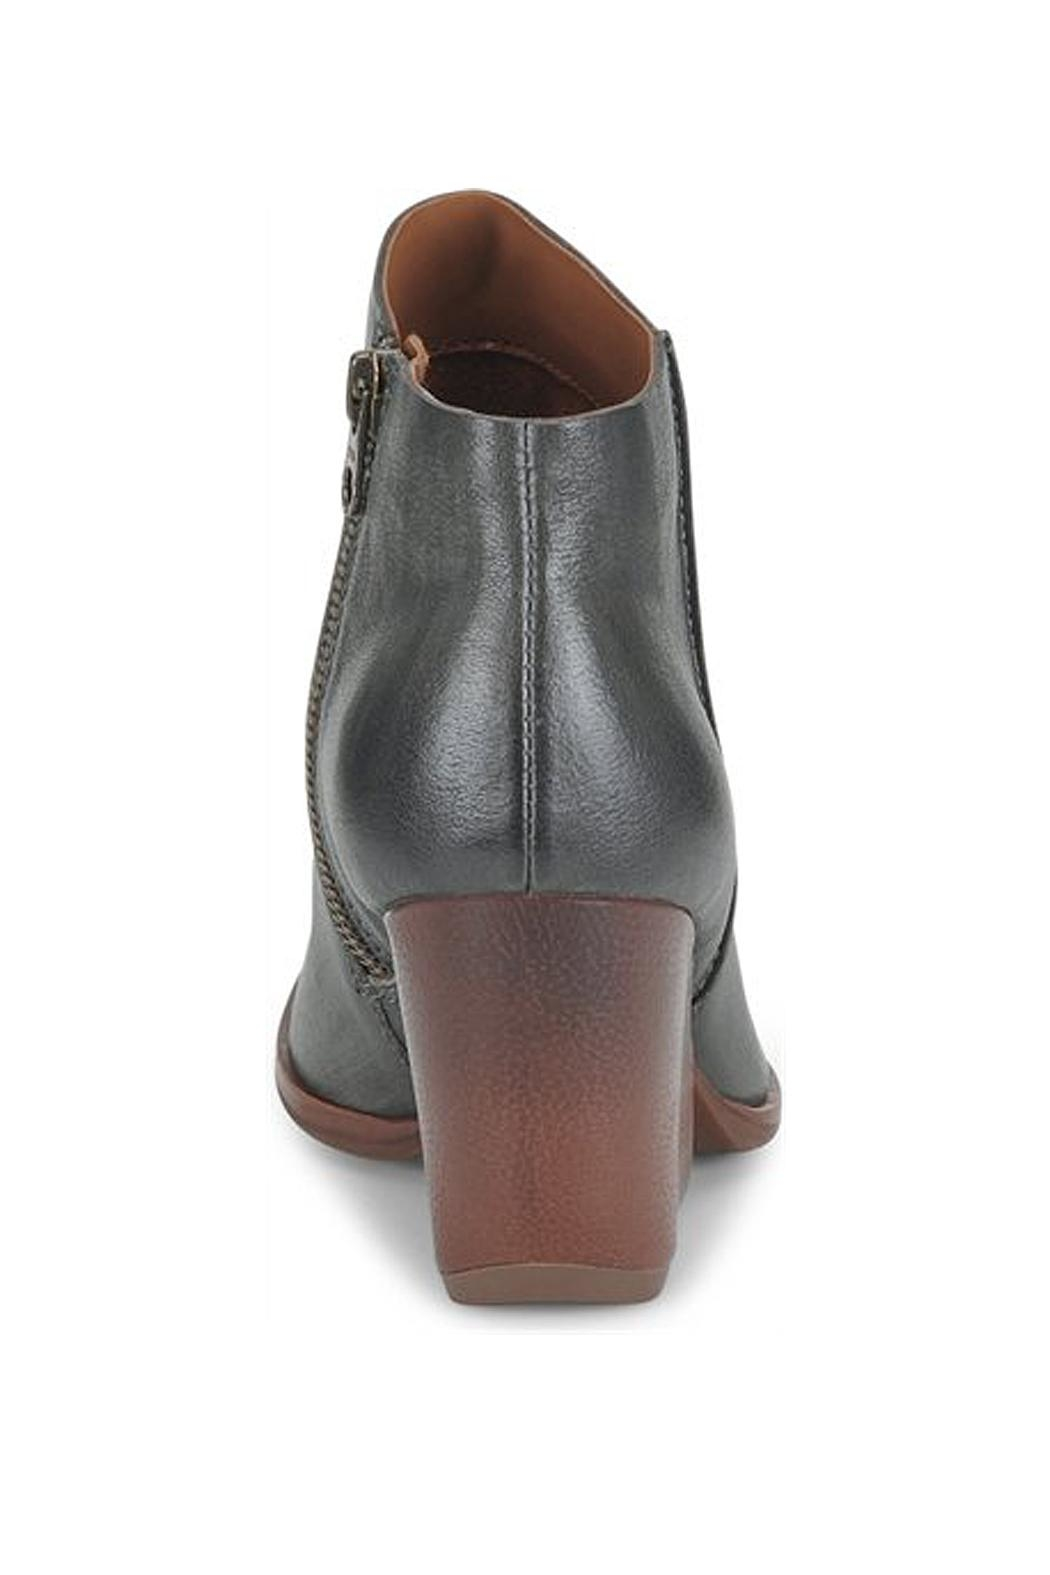 823d61de56a9 Kork-Ease Natalya Leather Bootie from Cleveland by Amy s Shoes ...